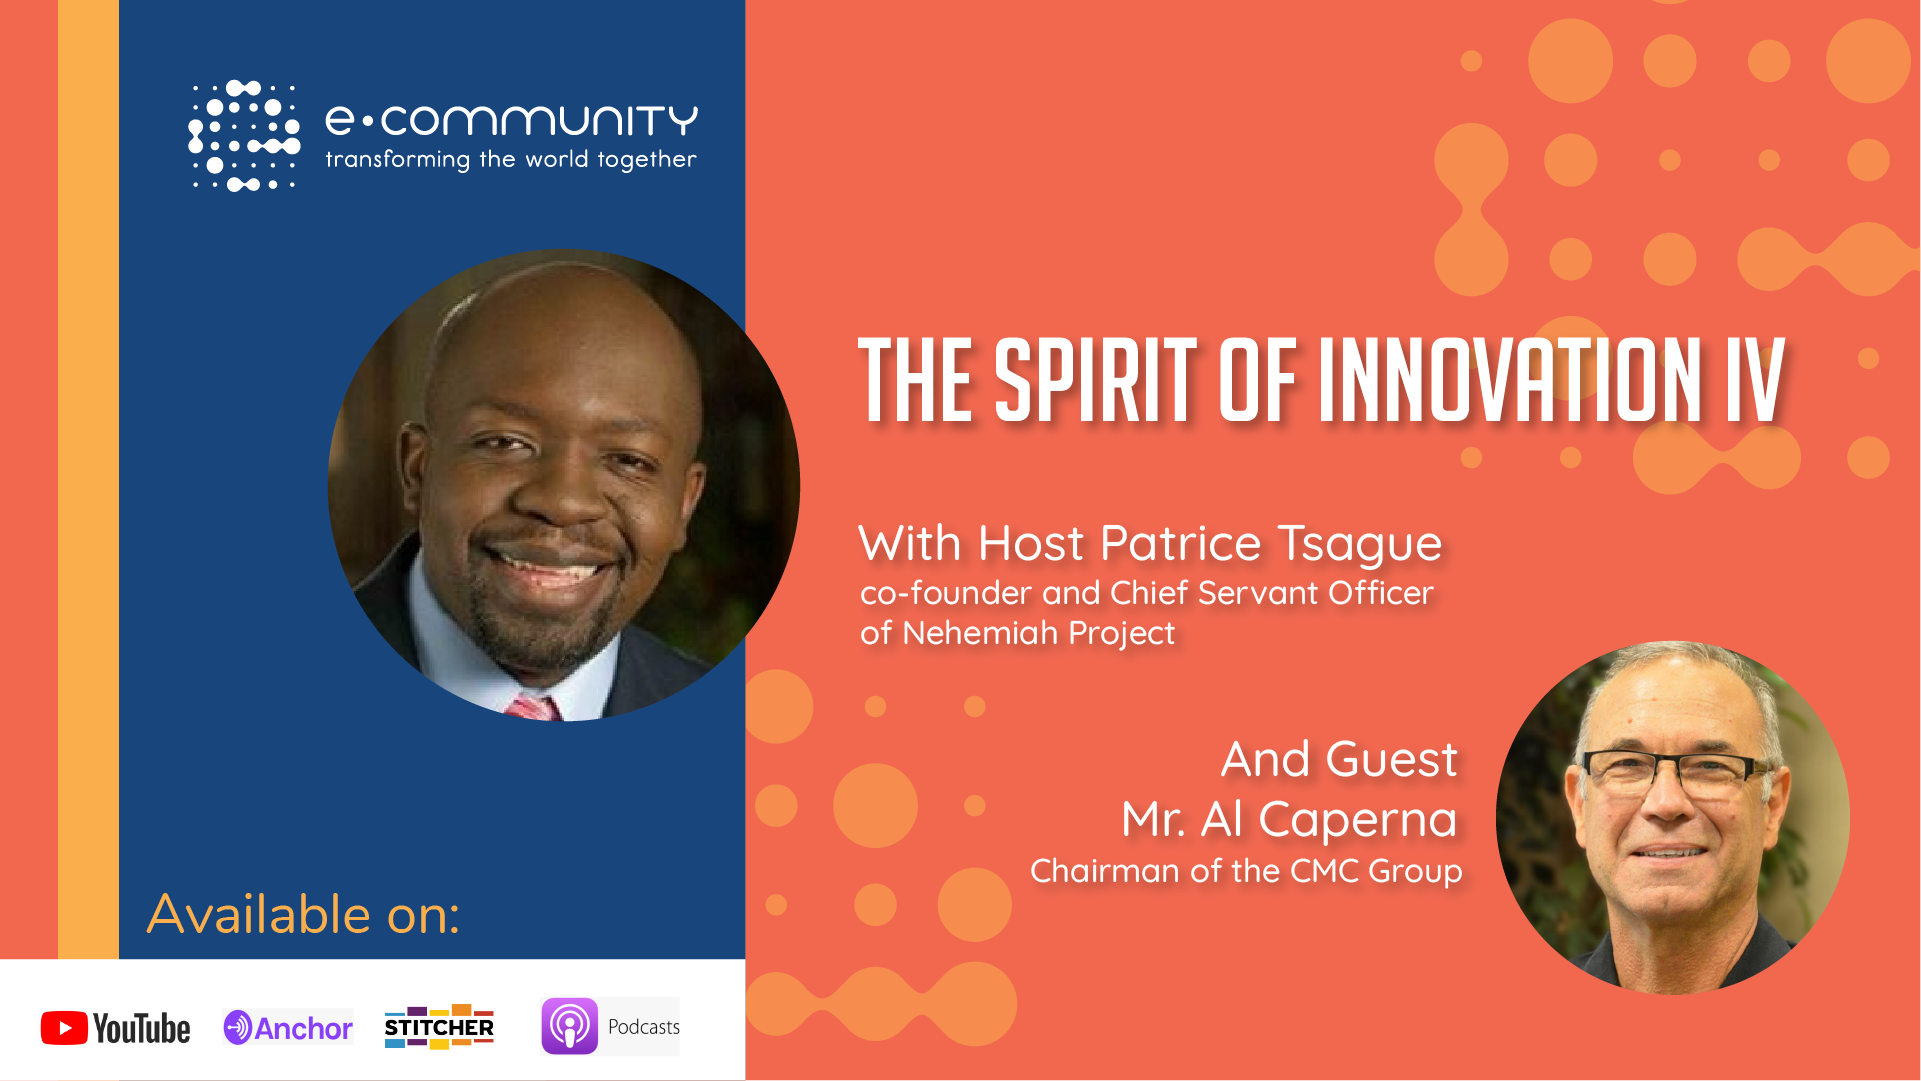 The Spirit of Innovation IV